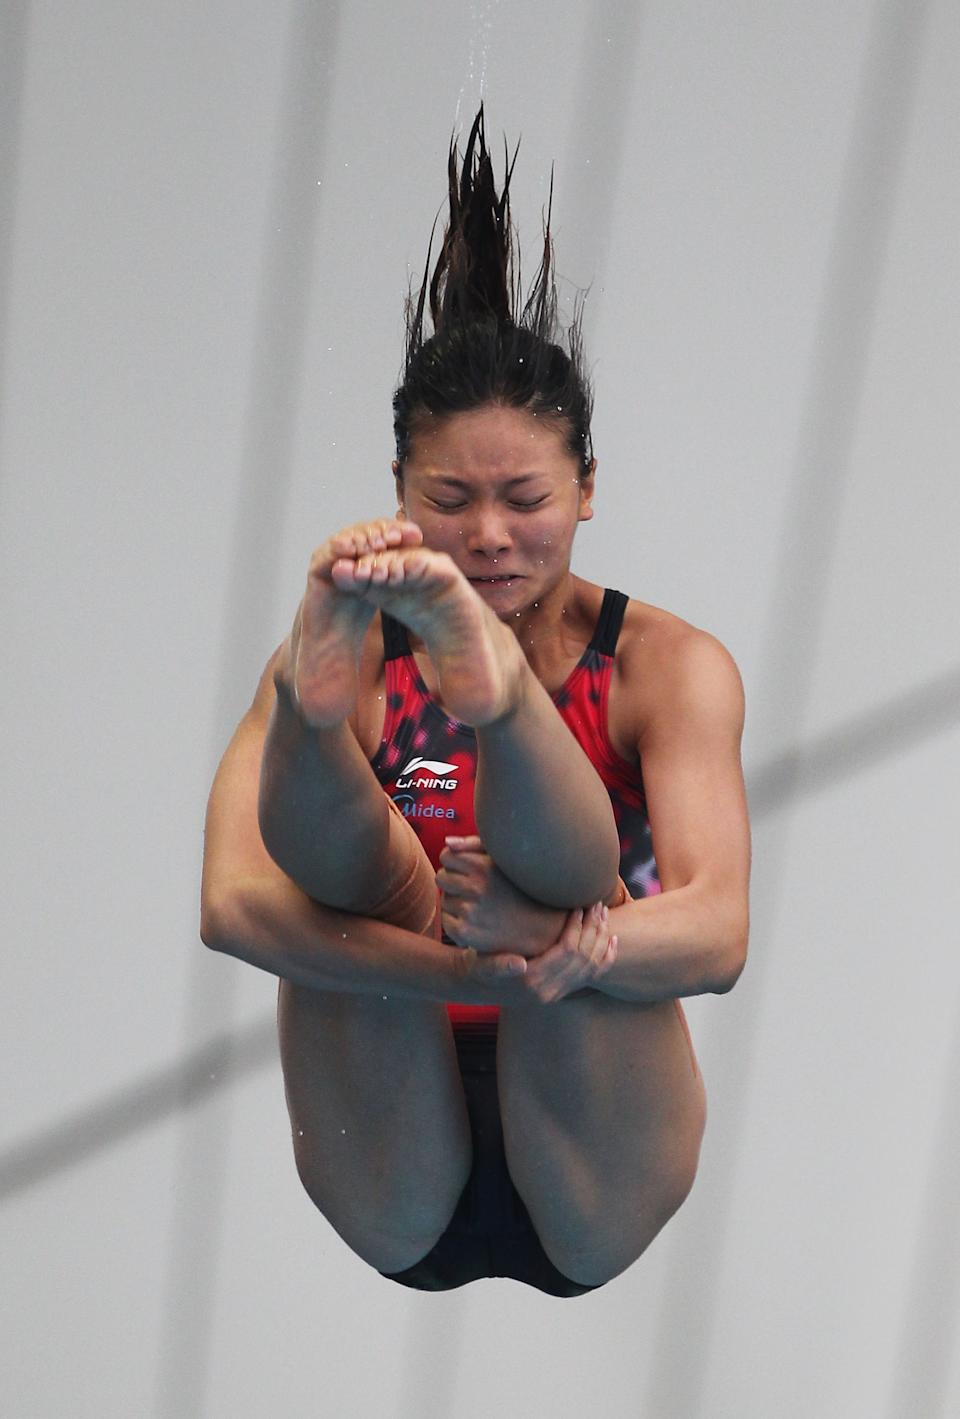 SHANGHAI, CHINA - JULY 23: Zi He of China competes in the Women's 3m Springboard Final during Day Eight of the 14th FINA World Championships at the Oriental Sports Center on July 23, 2011 in Shanghai, China. (Photo by Clive Rose/Getty Images)